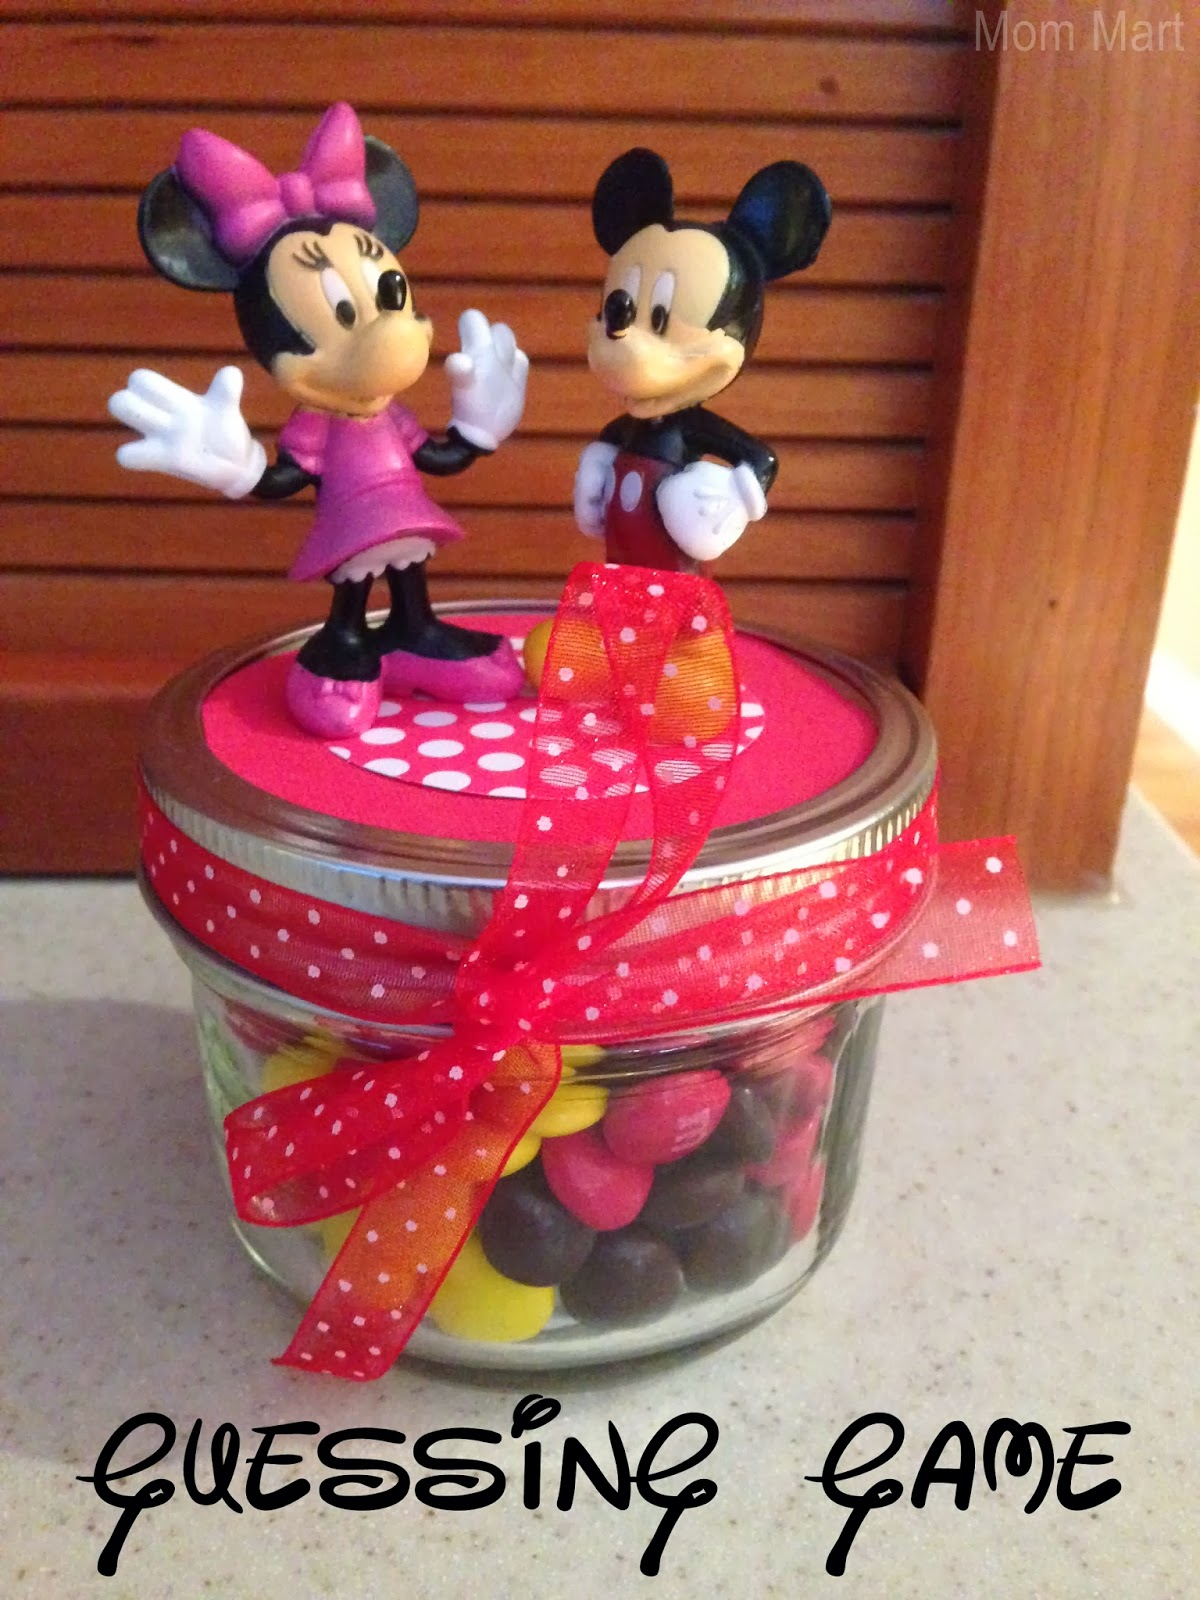 Minnie Mouse Themed Birthday Party Games - Guessing Game